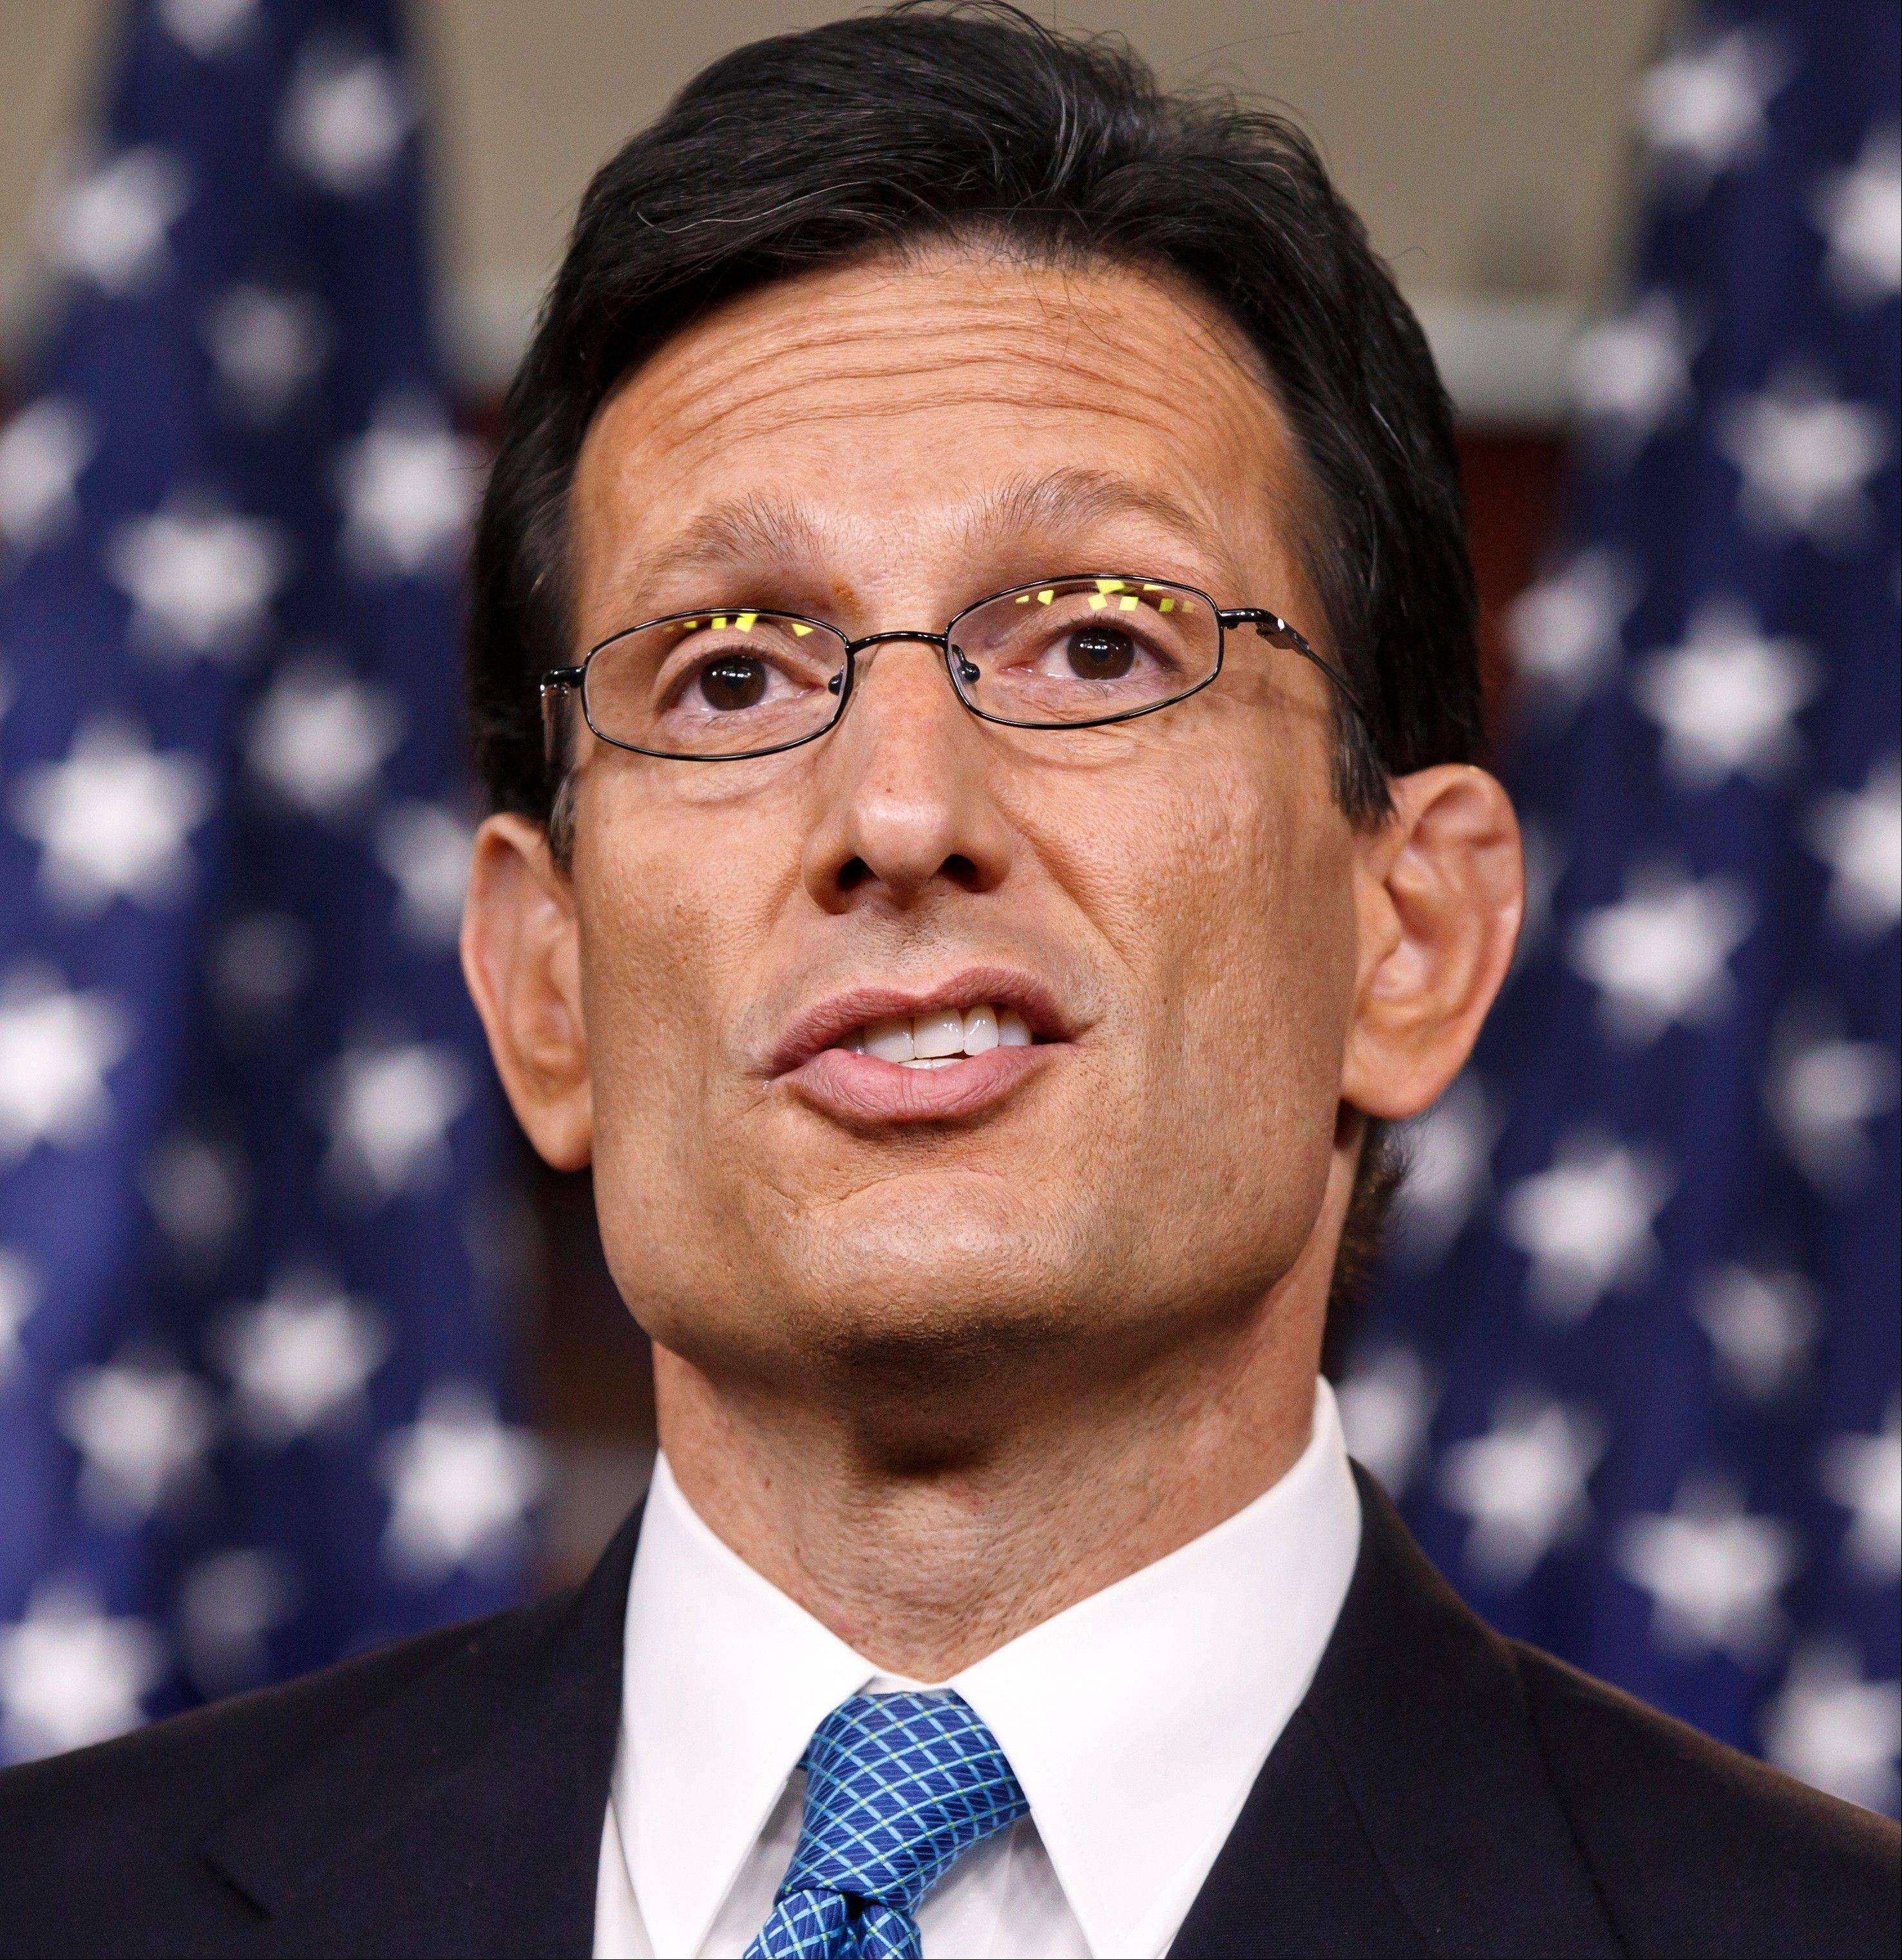 House Majority Leader Eric Cantor first heard about CIA Director David Petraeus� extramarital affair Saturday, Oct. 27, from an FBI source he didn�t know, according to an aide in Cantor�s office.